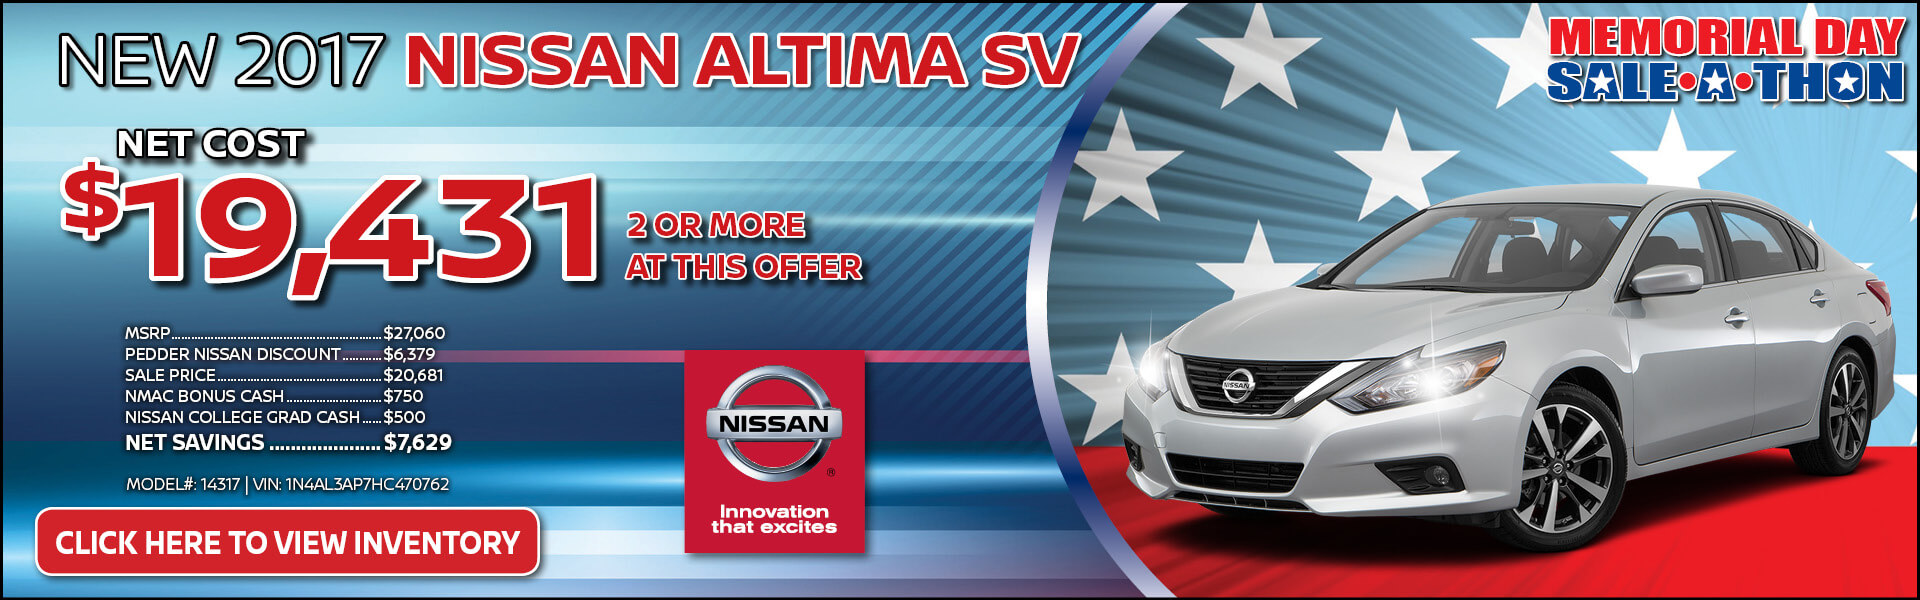 2017 Nissan Altima $19,431 Purchase